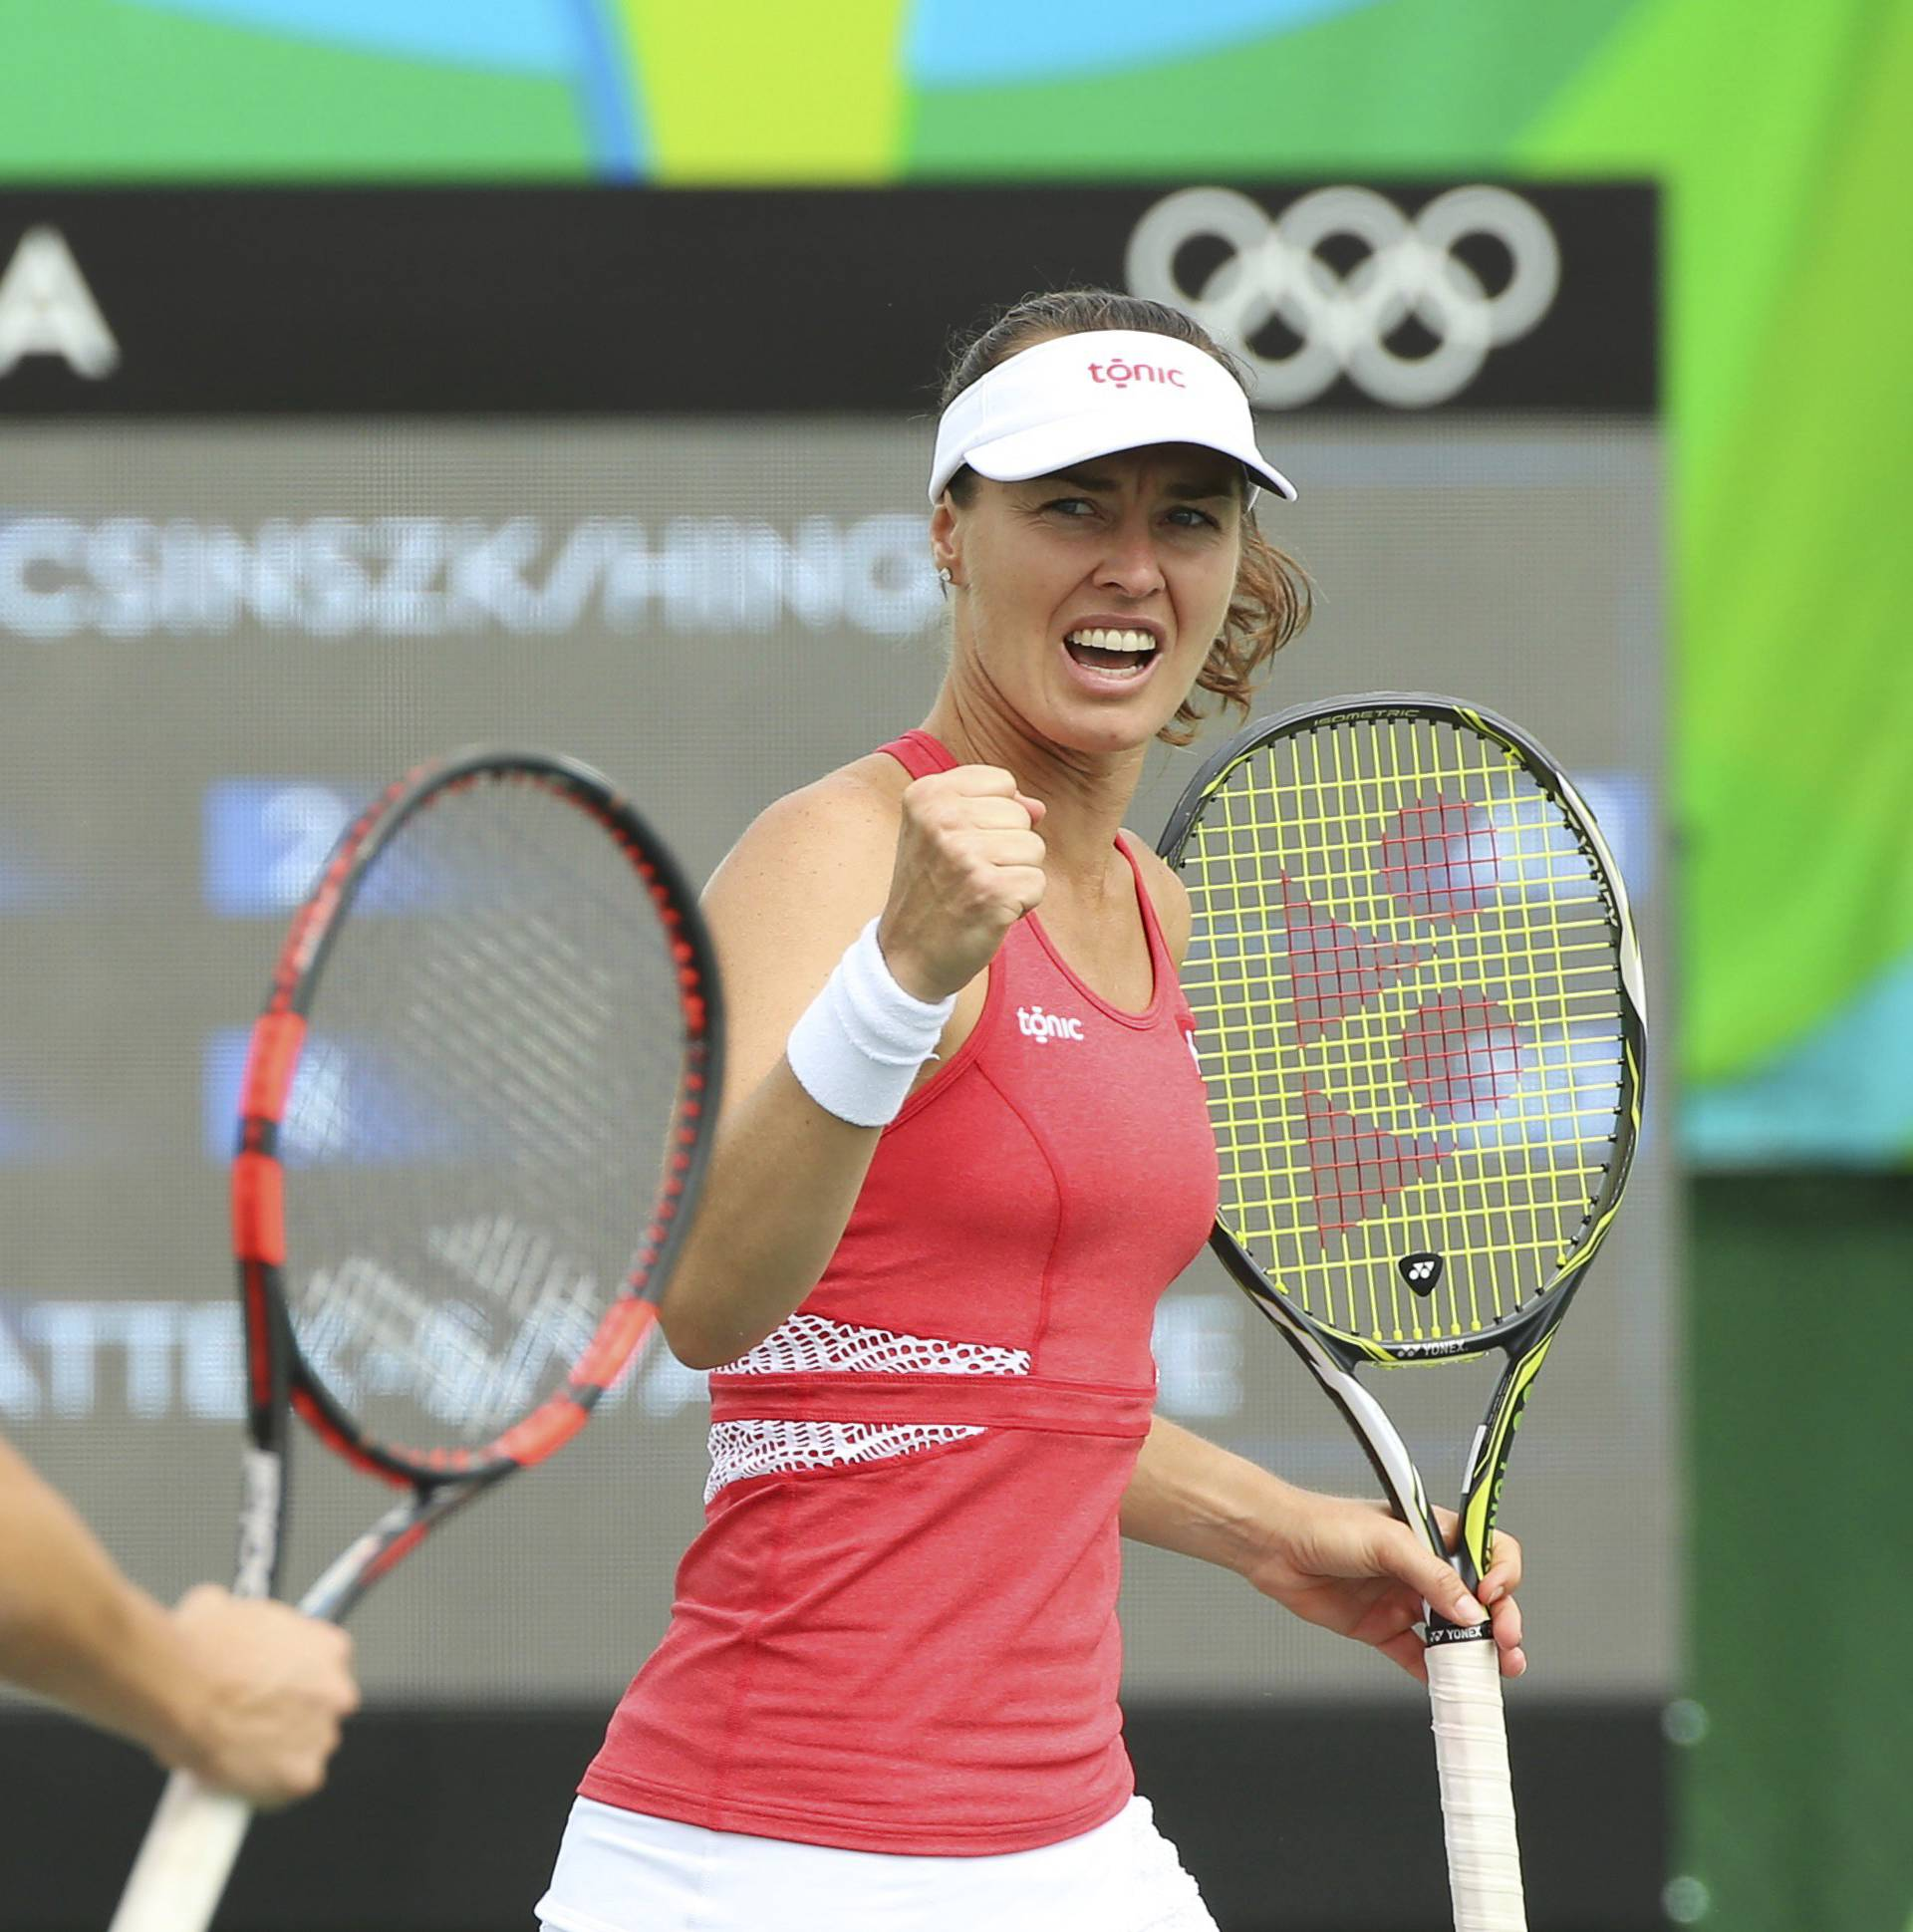 Tennis - Women's Doubles Second Round